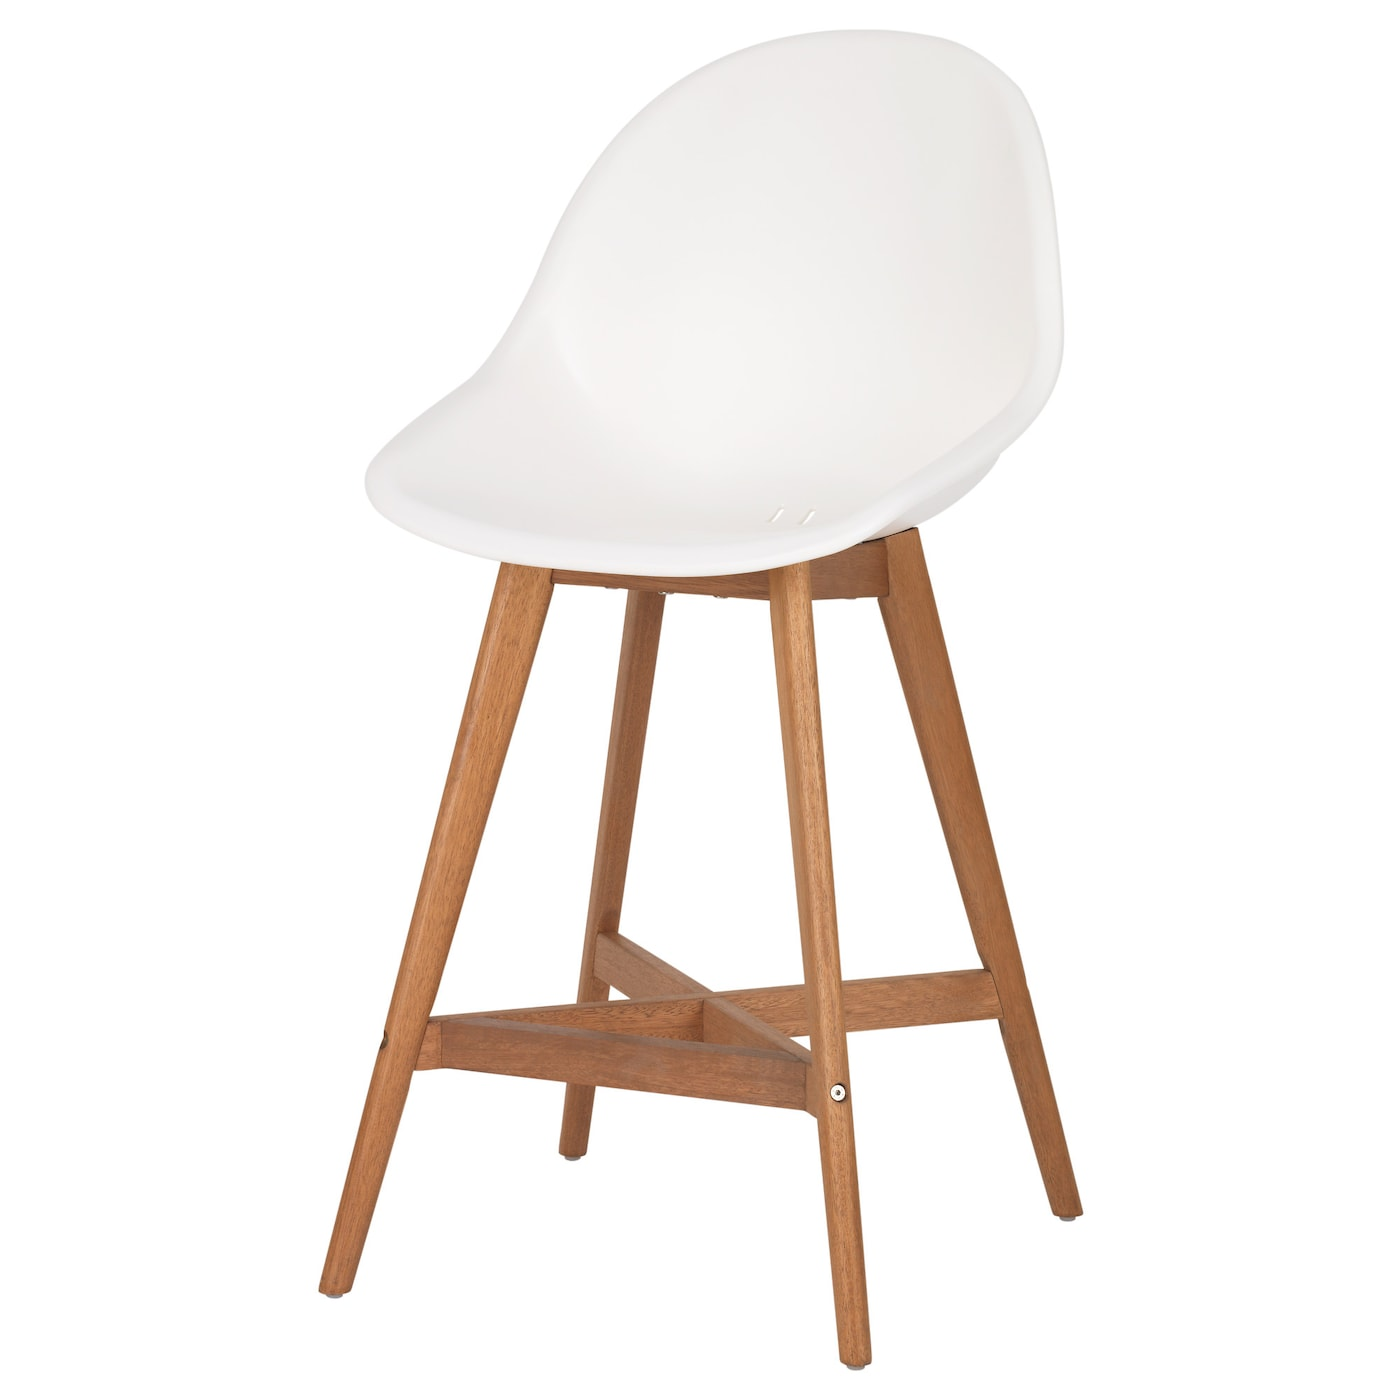 Fanbyn bar stool with backrest white 64 cm ikea for Barhocker ikea